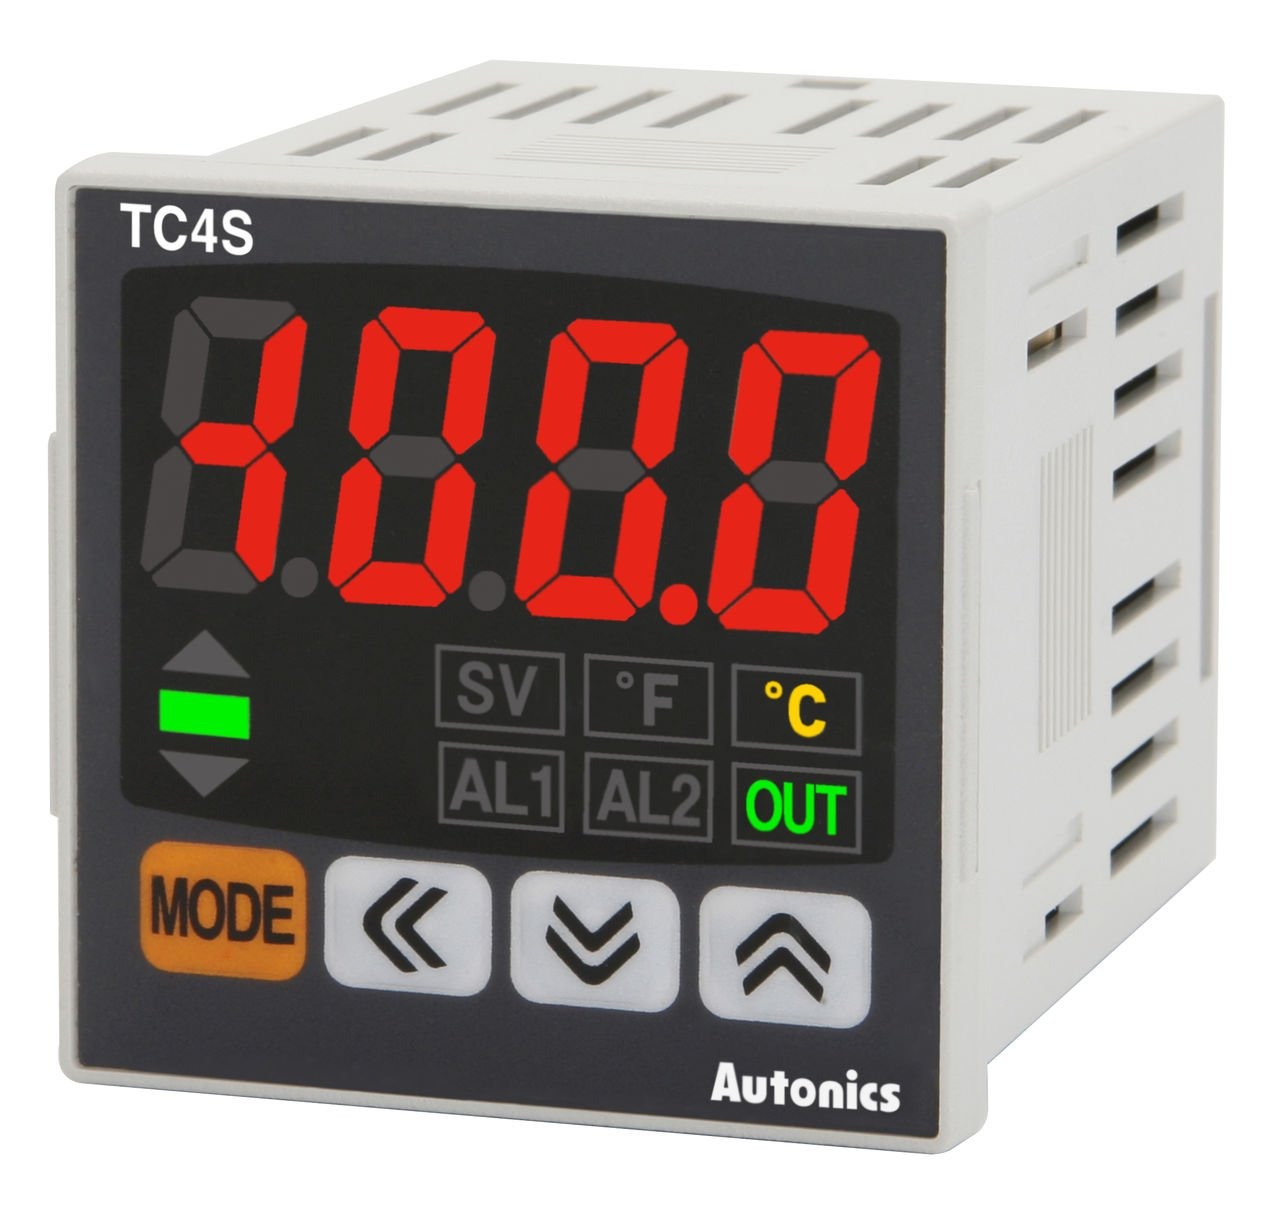 Autonics TC4SP-14R Temp Control, 1/16 DIN, 11 Pin, Single Display, 4 Digit, PID Control, Relay & SSR Output, 1 Alarm Output, 100-240 VAC (Socket Required)